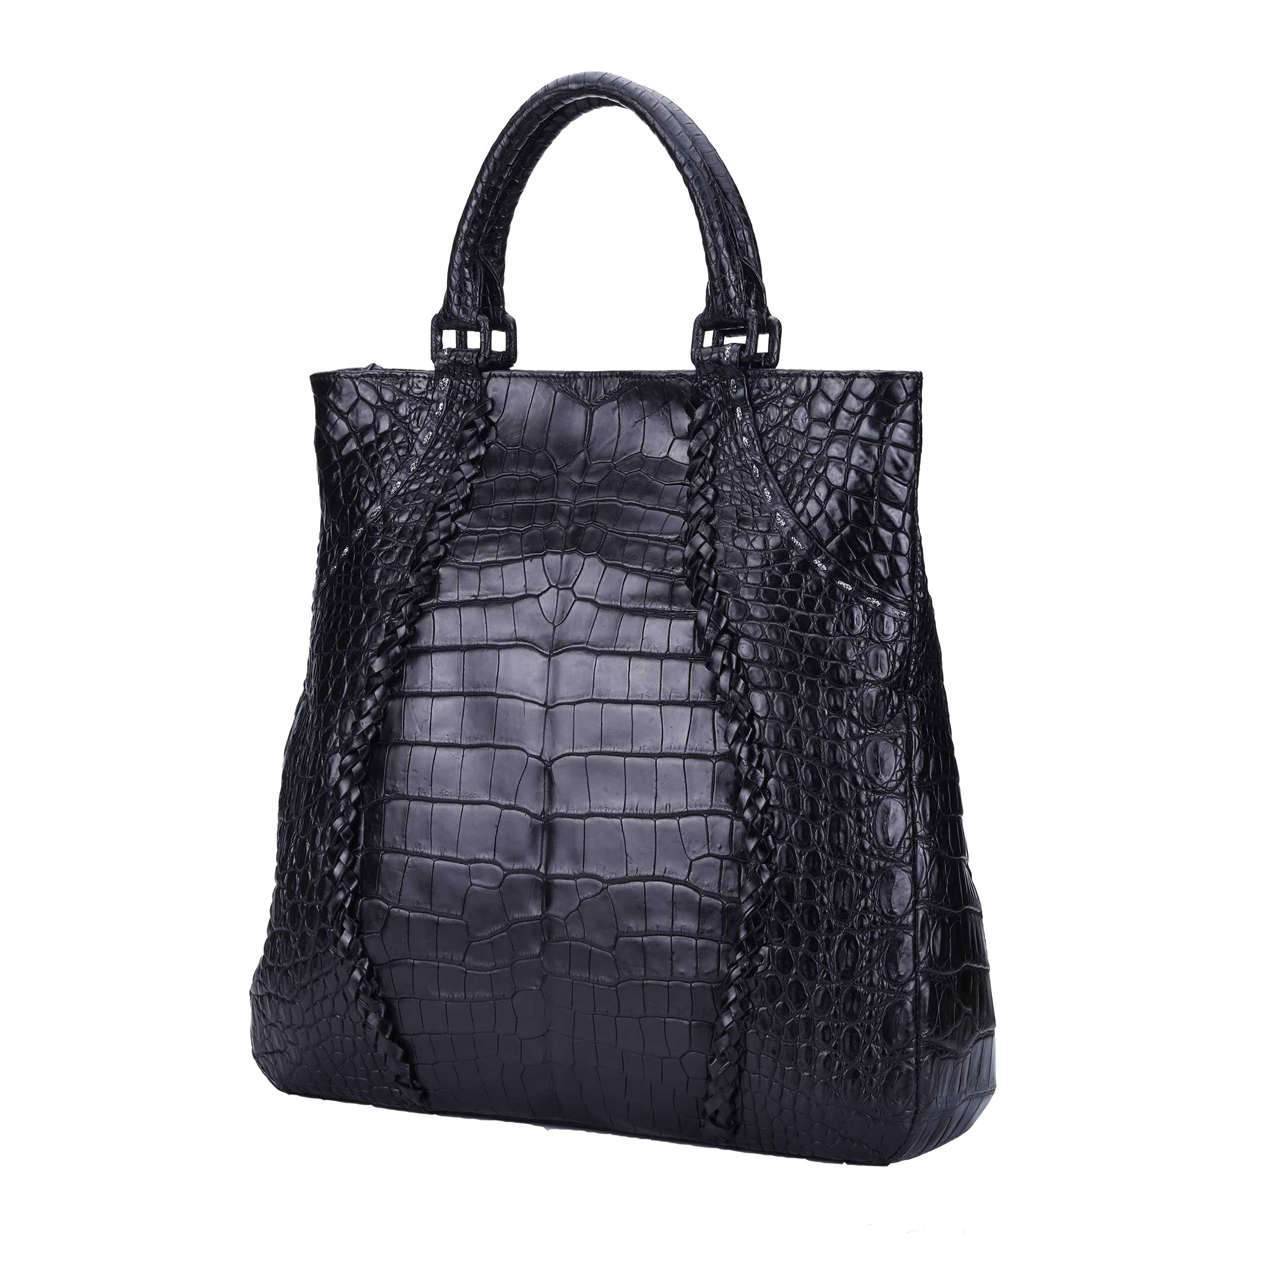 crocodile fashion handbags duffle for ladies-4